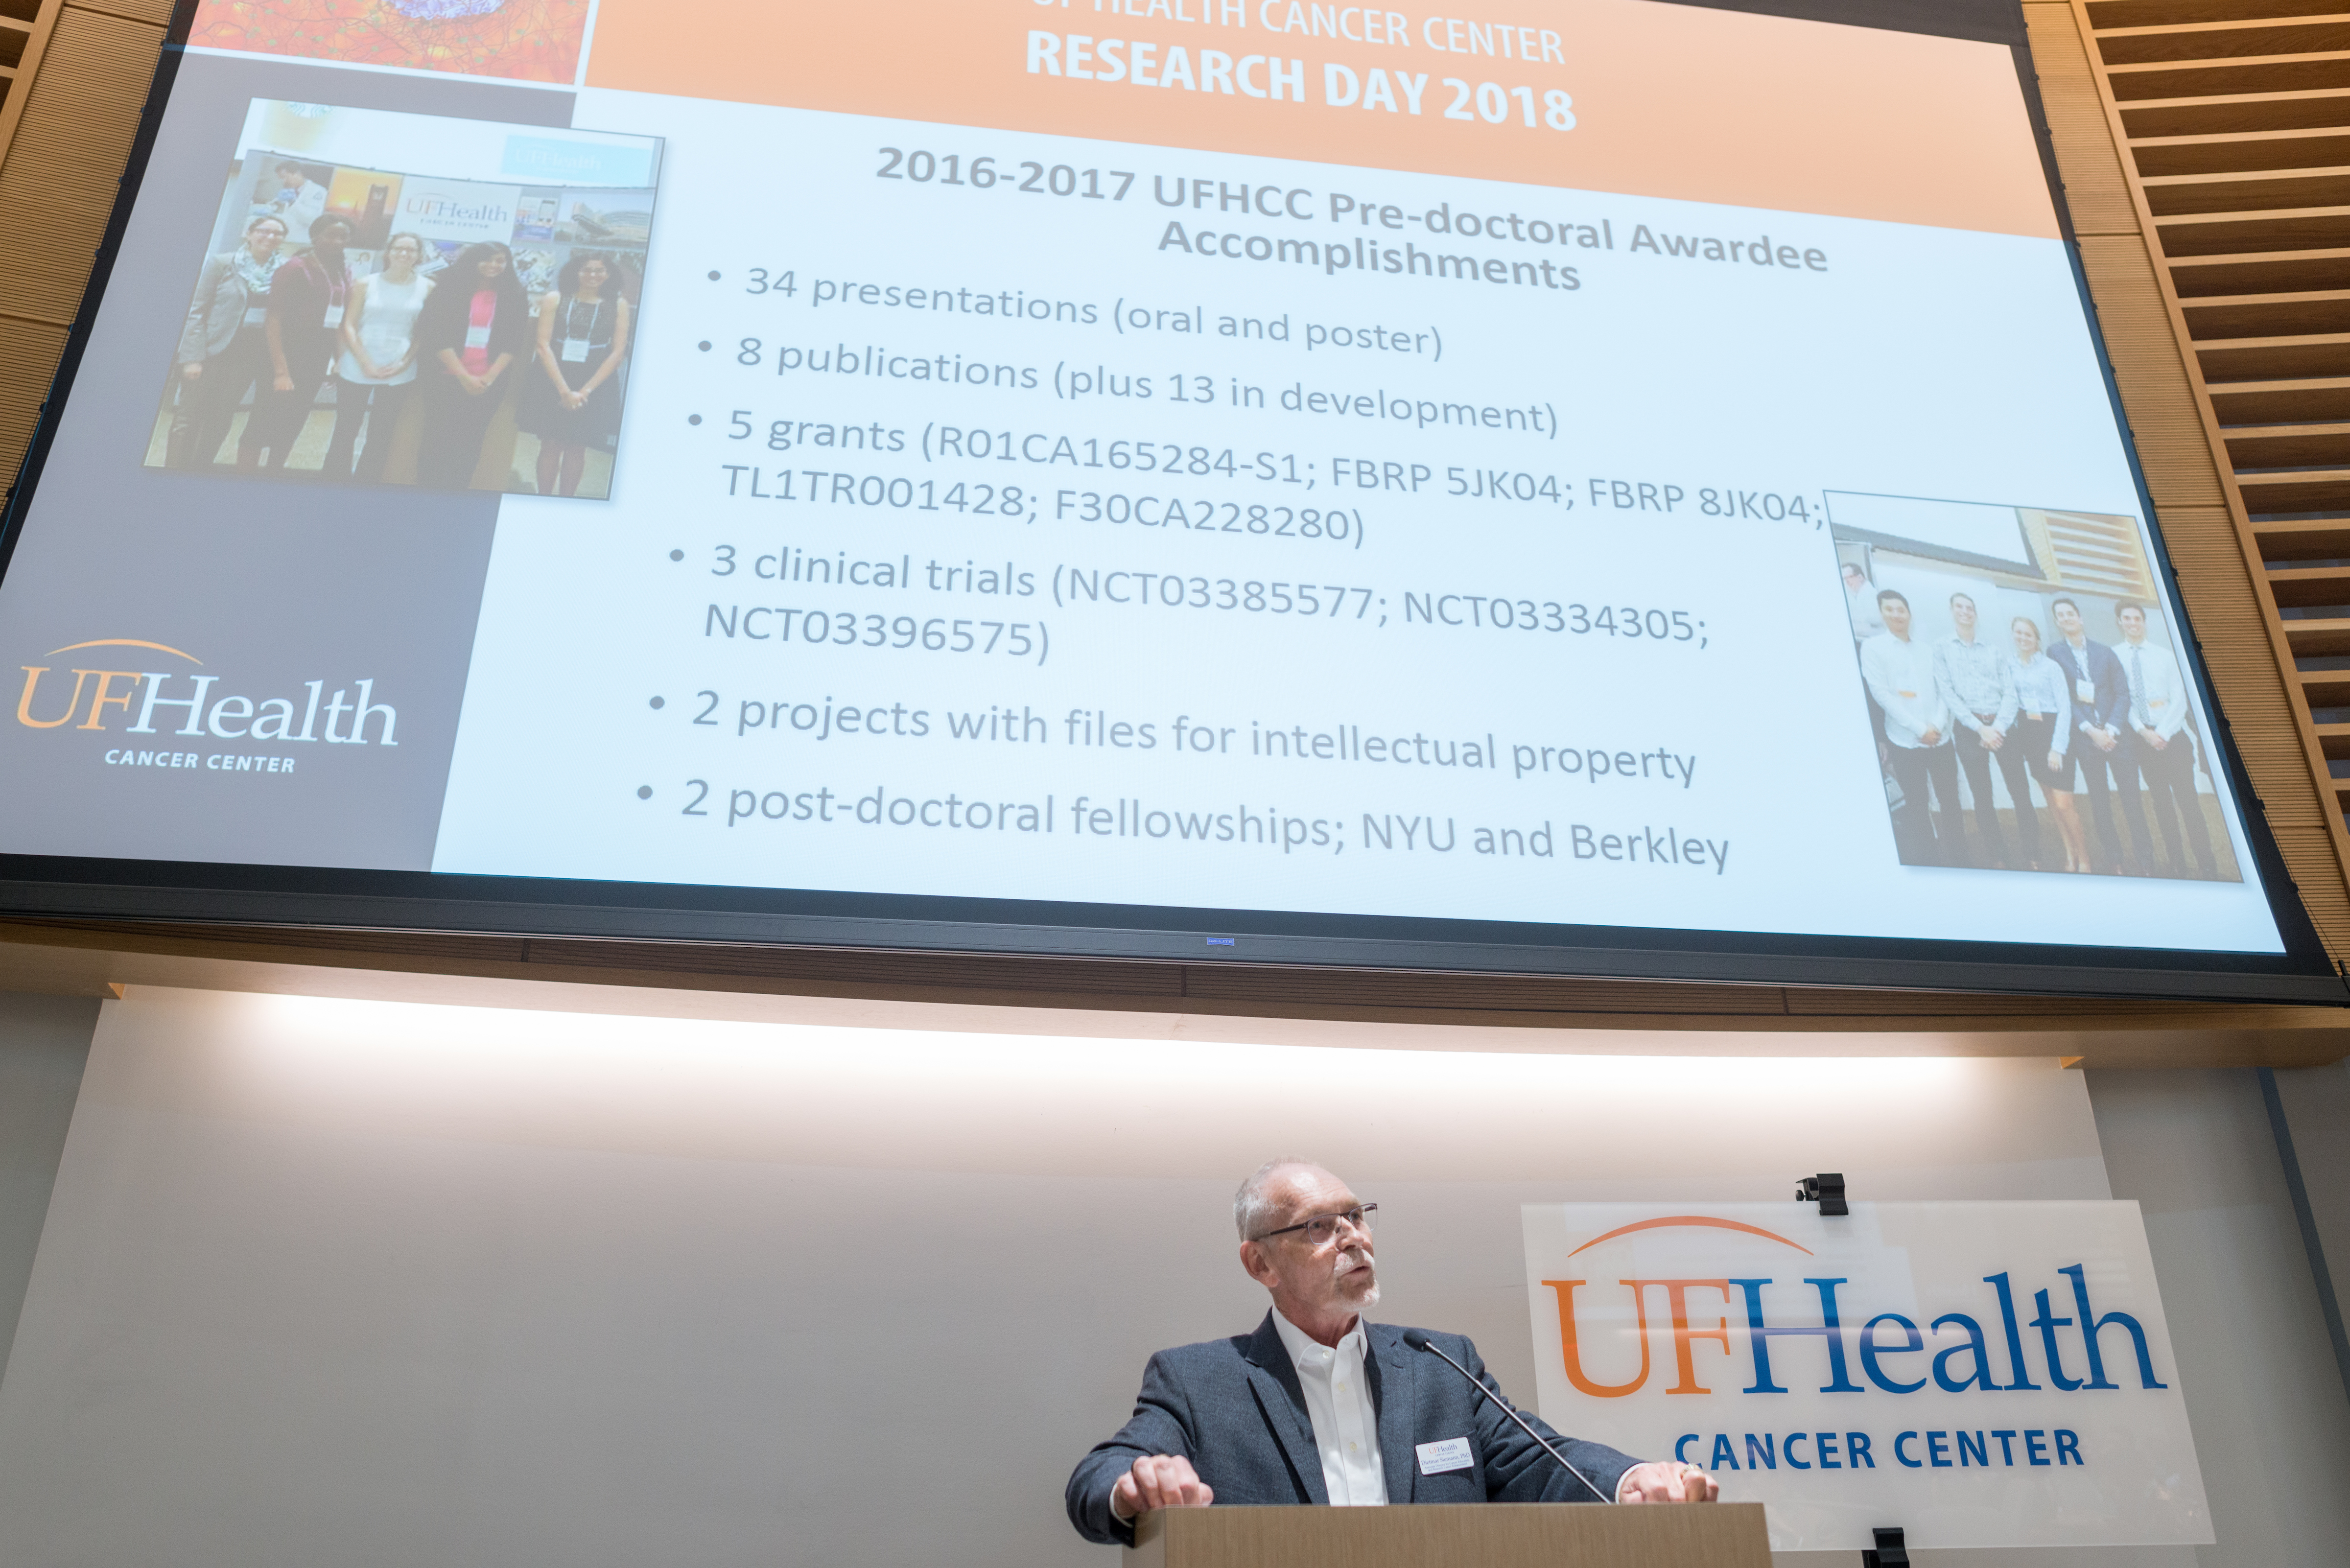 Research Day 2018 » Cancer Center » UF Health Cancer Center